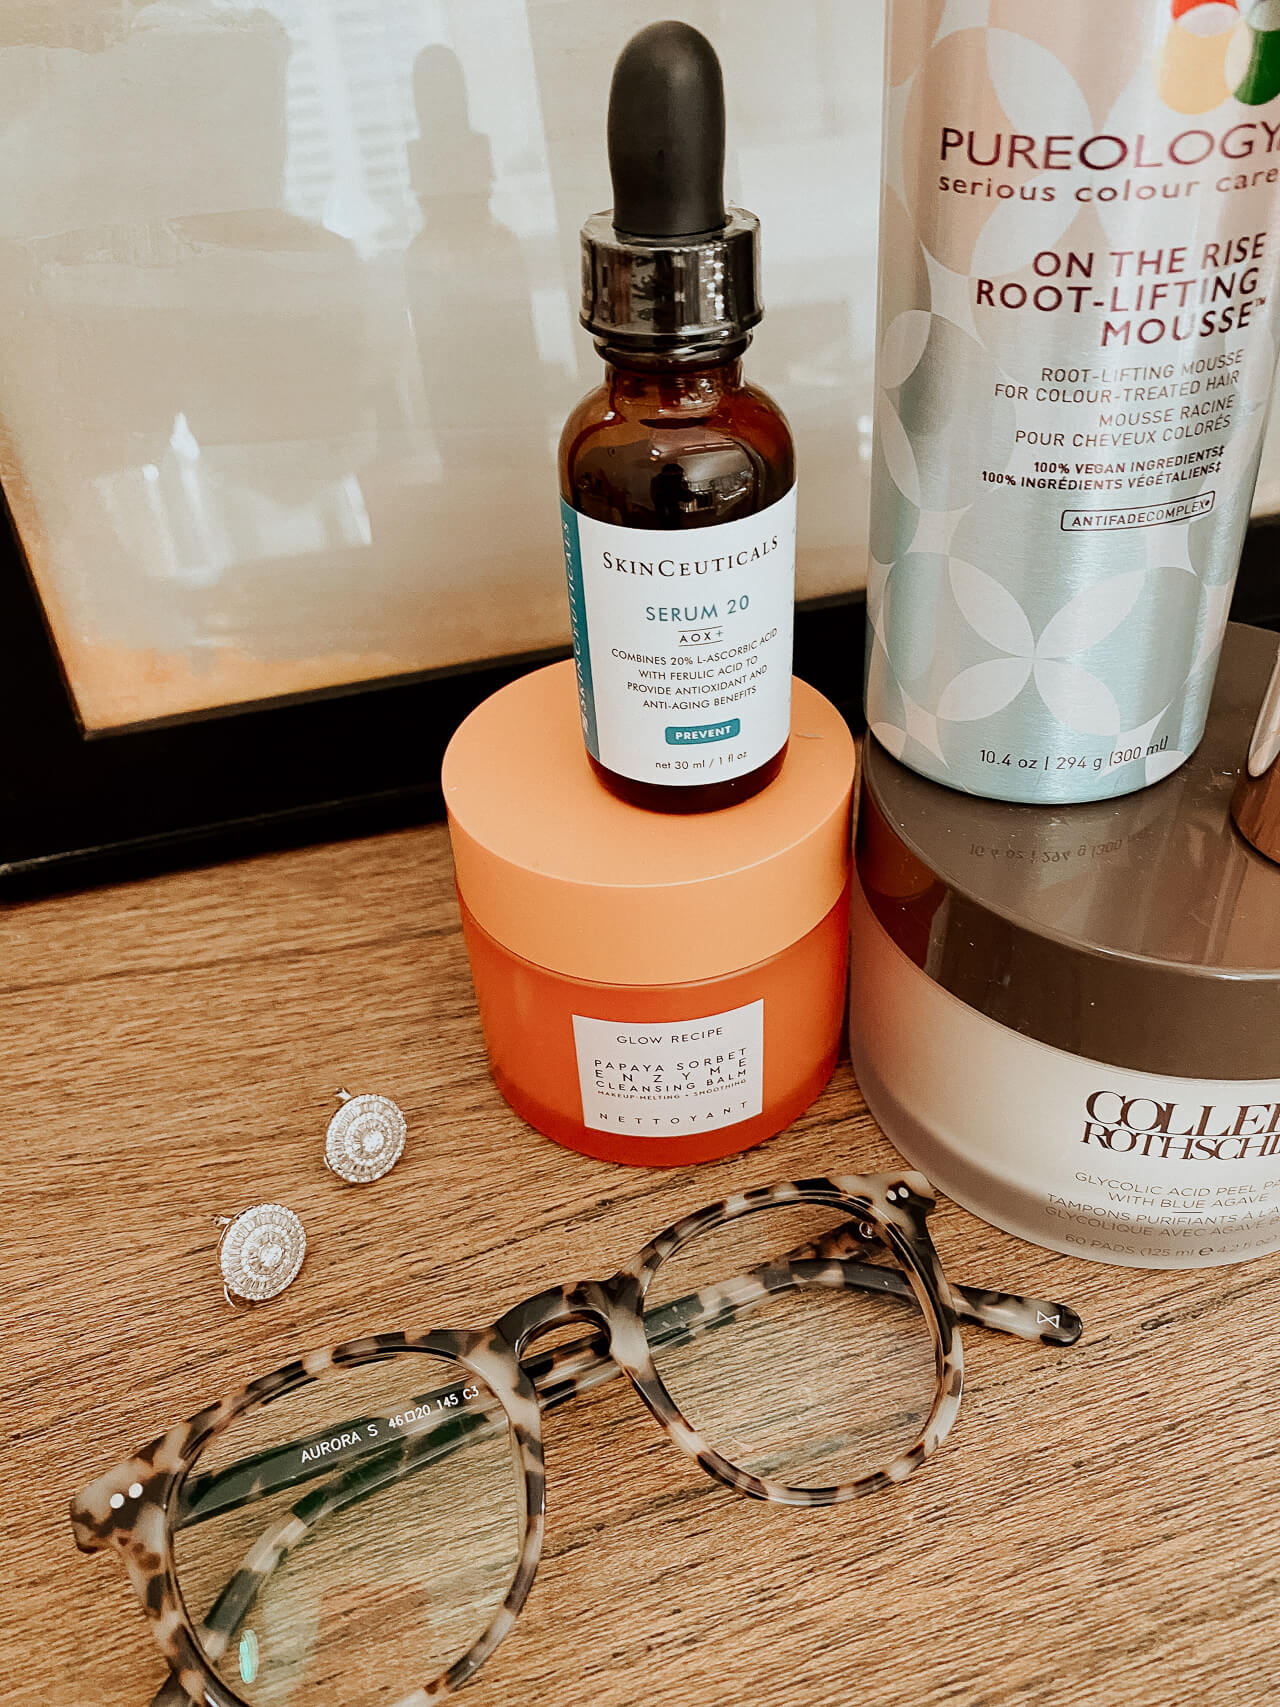 Here are some powerhouse products I'm really excited to try! - M Loves M @marmar